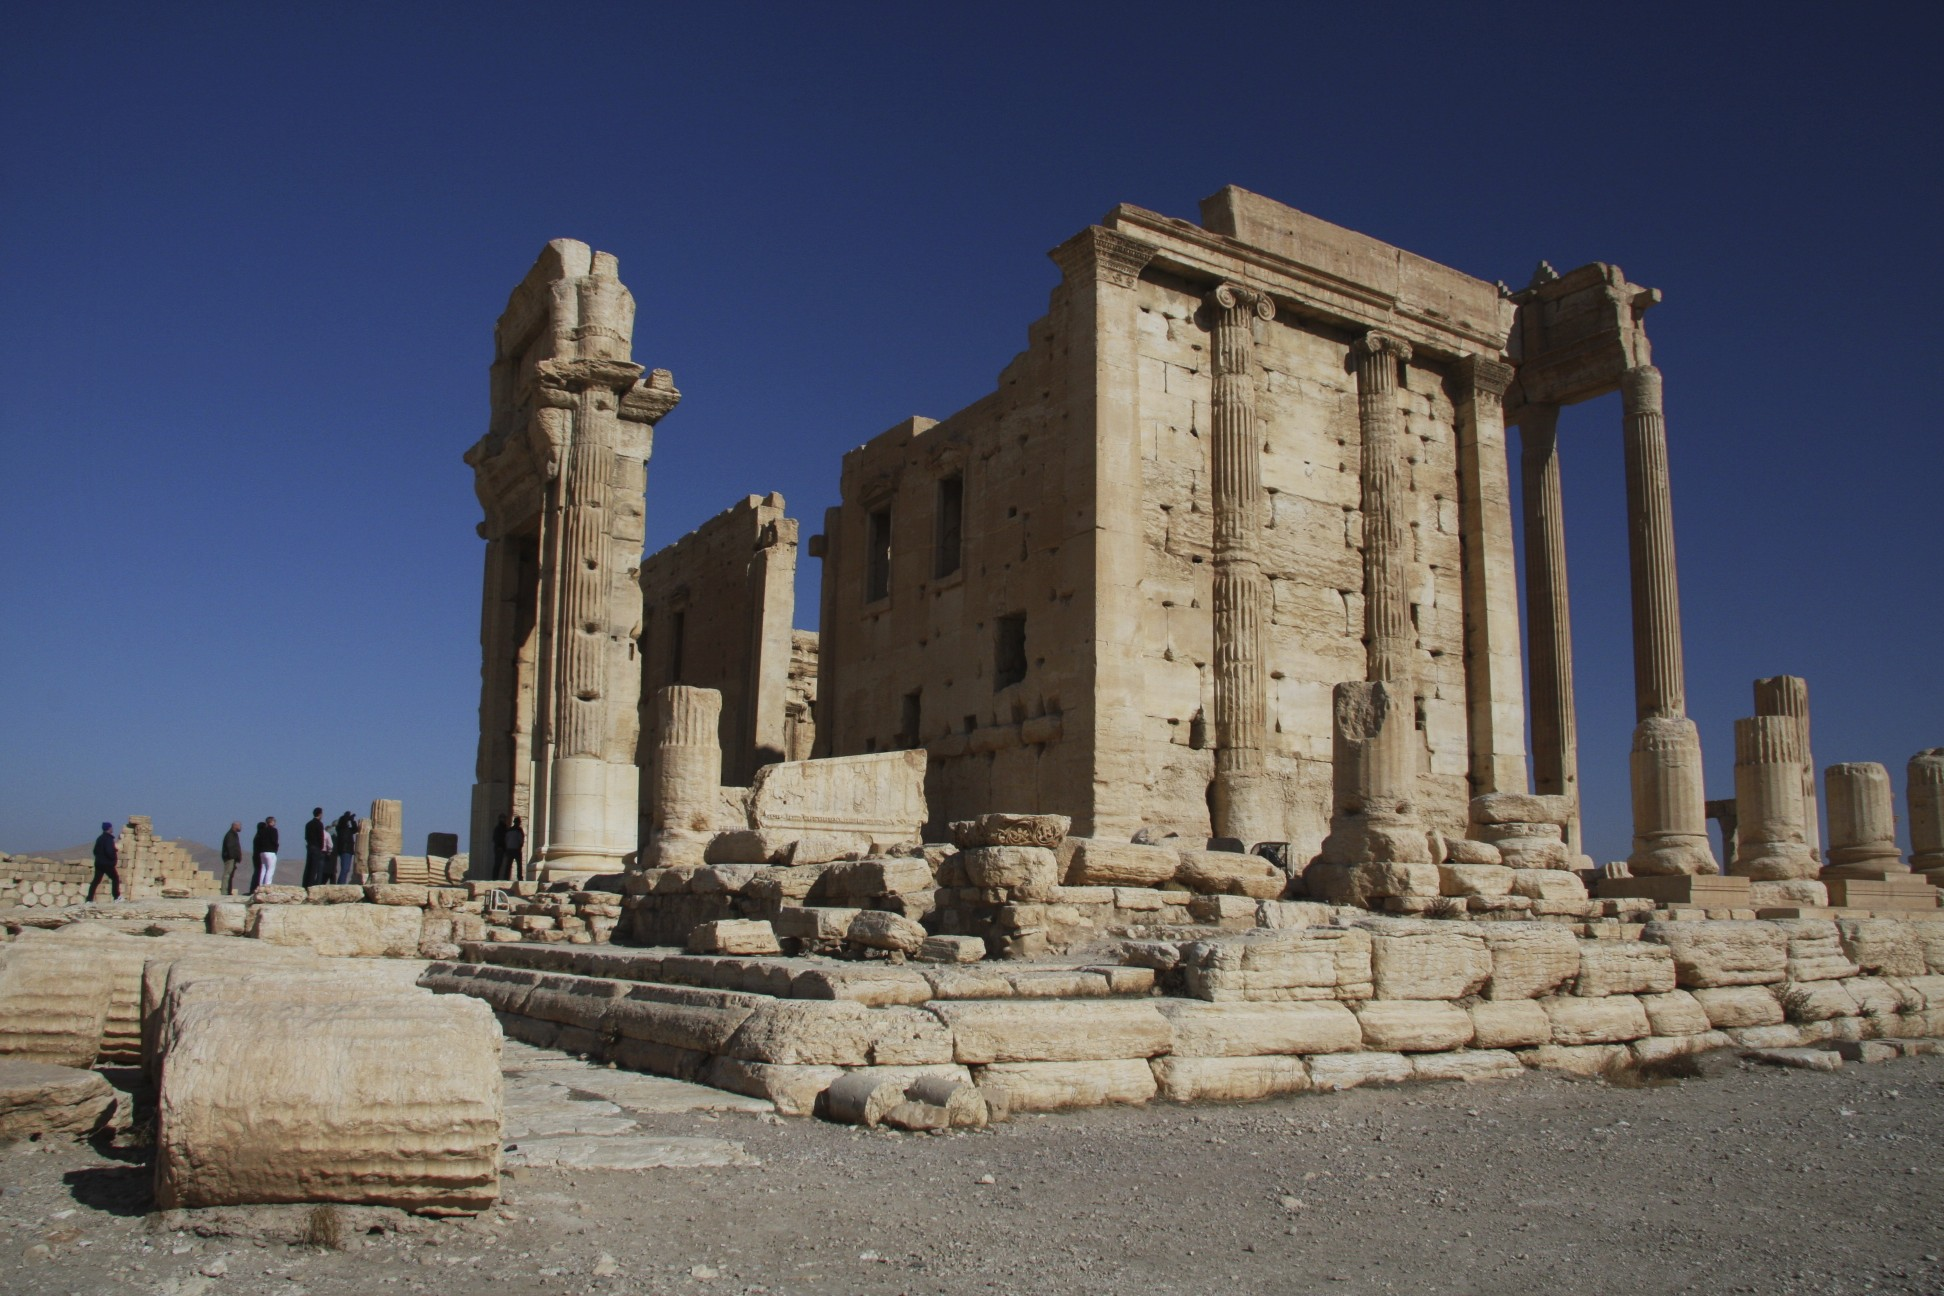 The Temple of Bel built in 32 AD